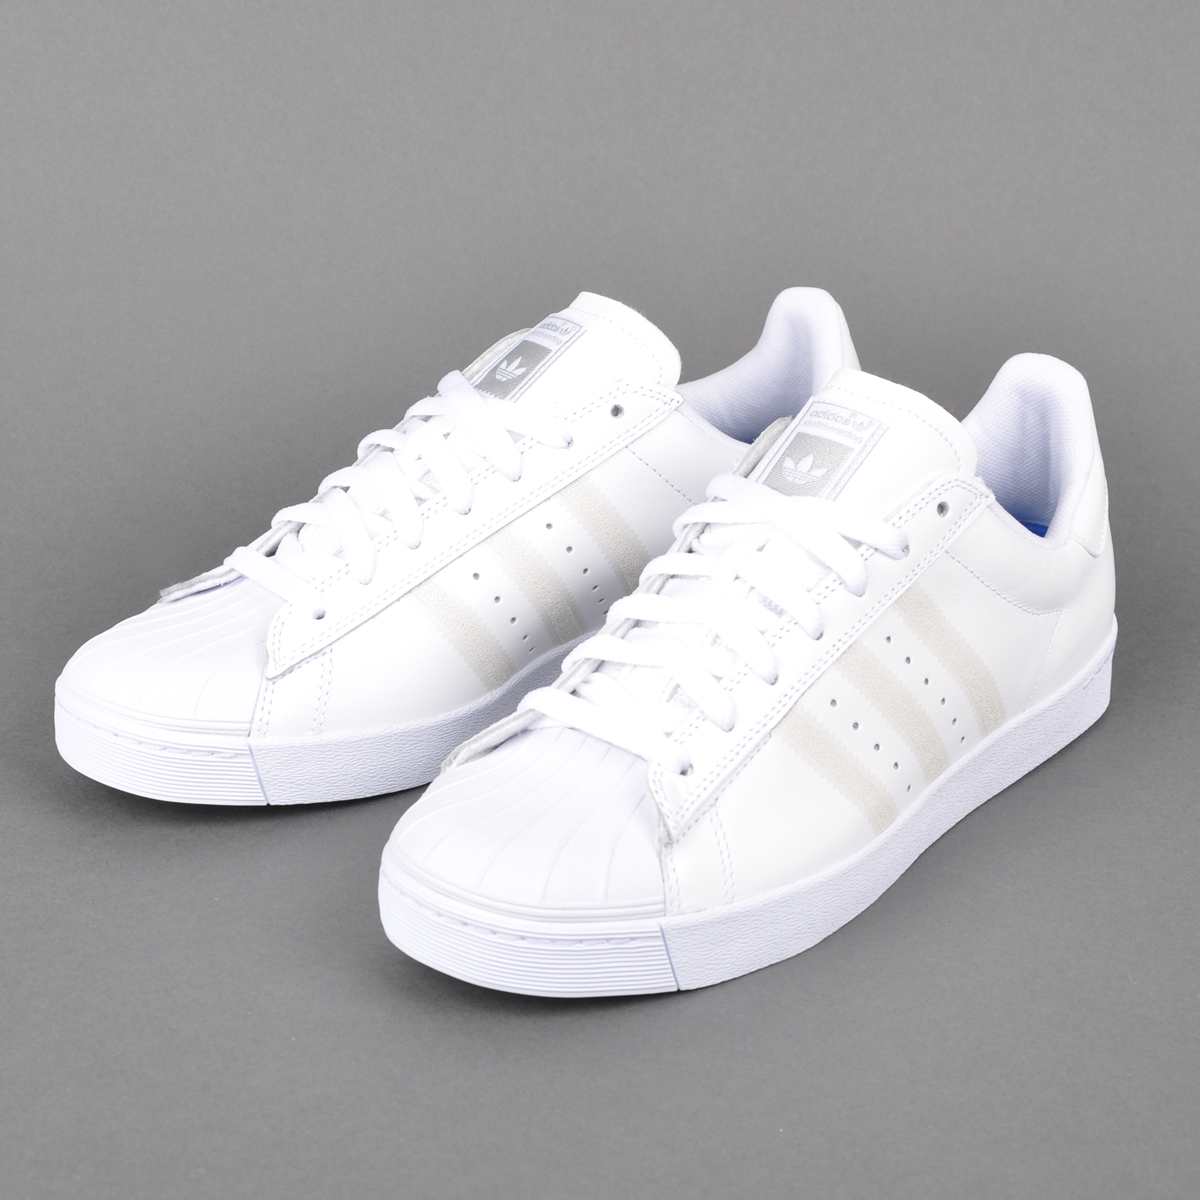 huge discount e0973 b8388 Adidas Original Adidas Superstar UP New in Box Size 7 from